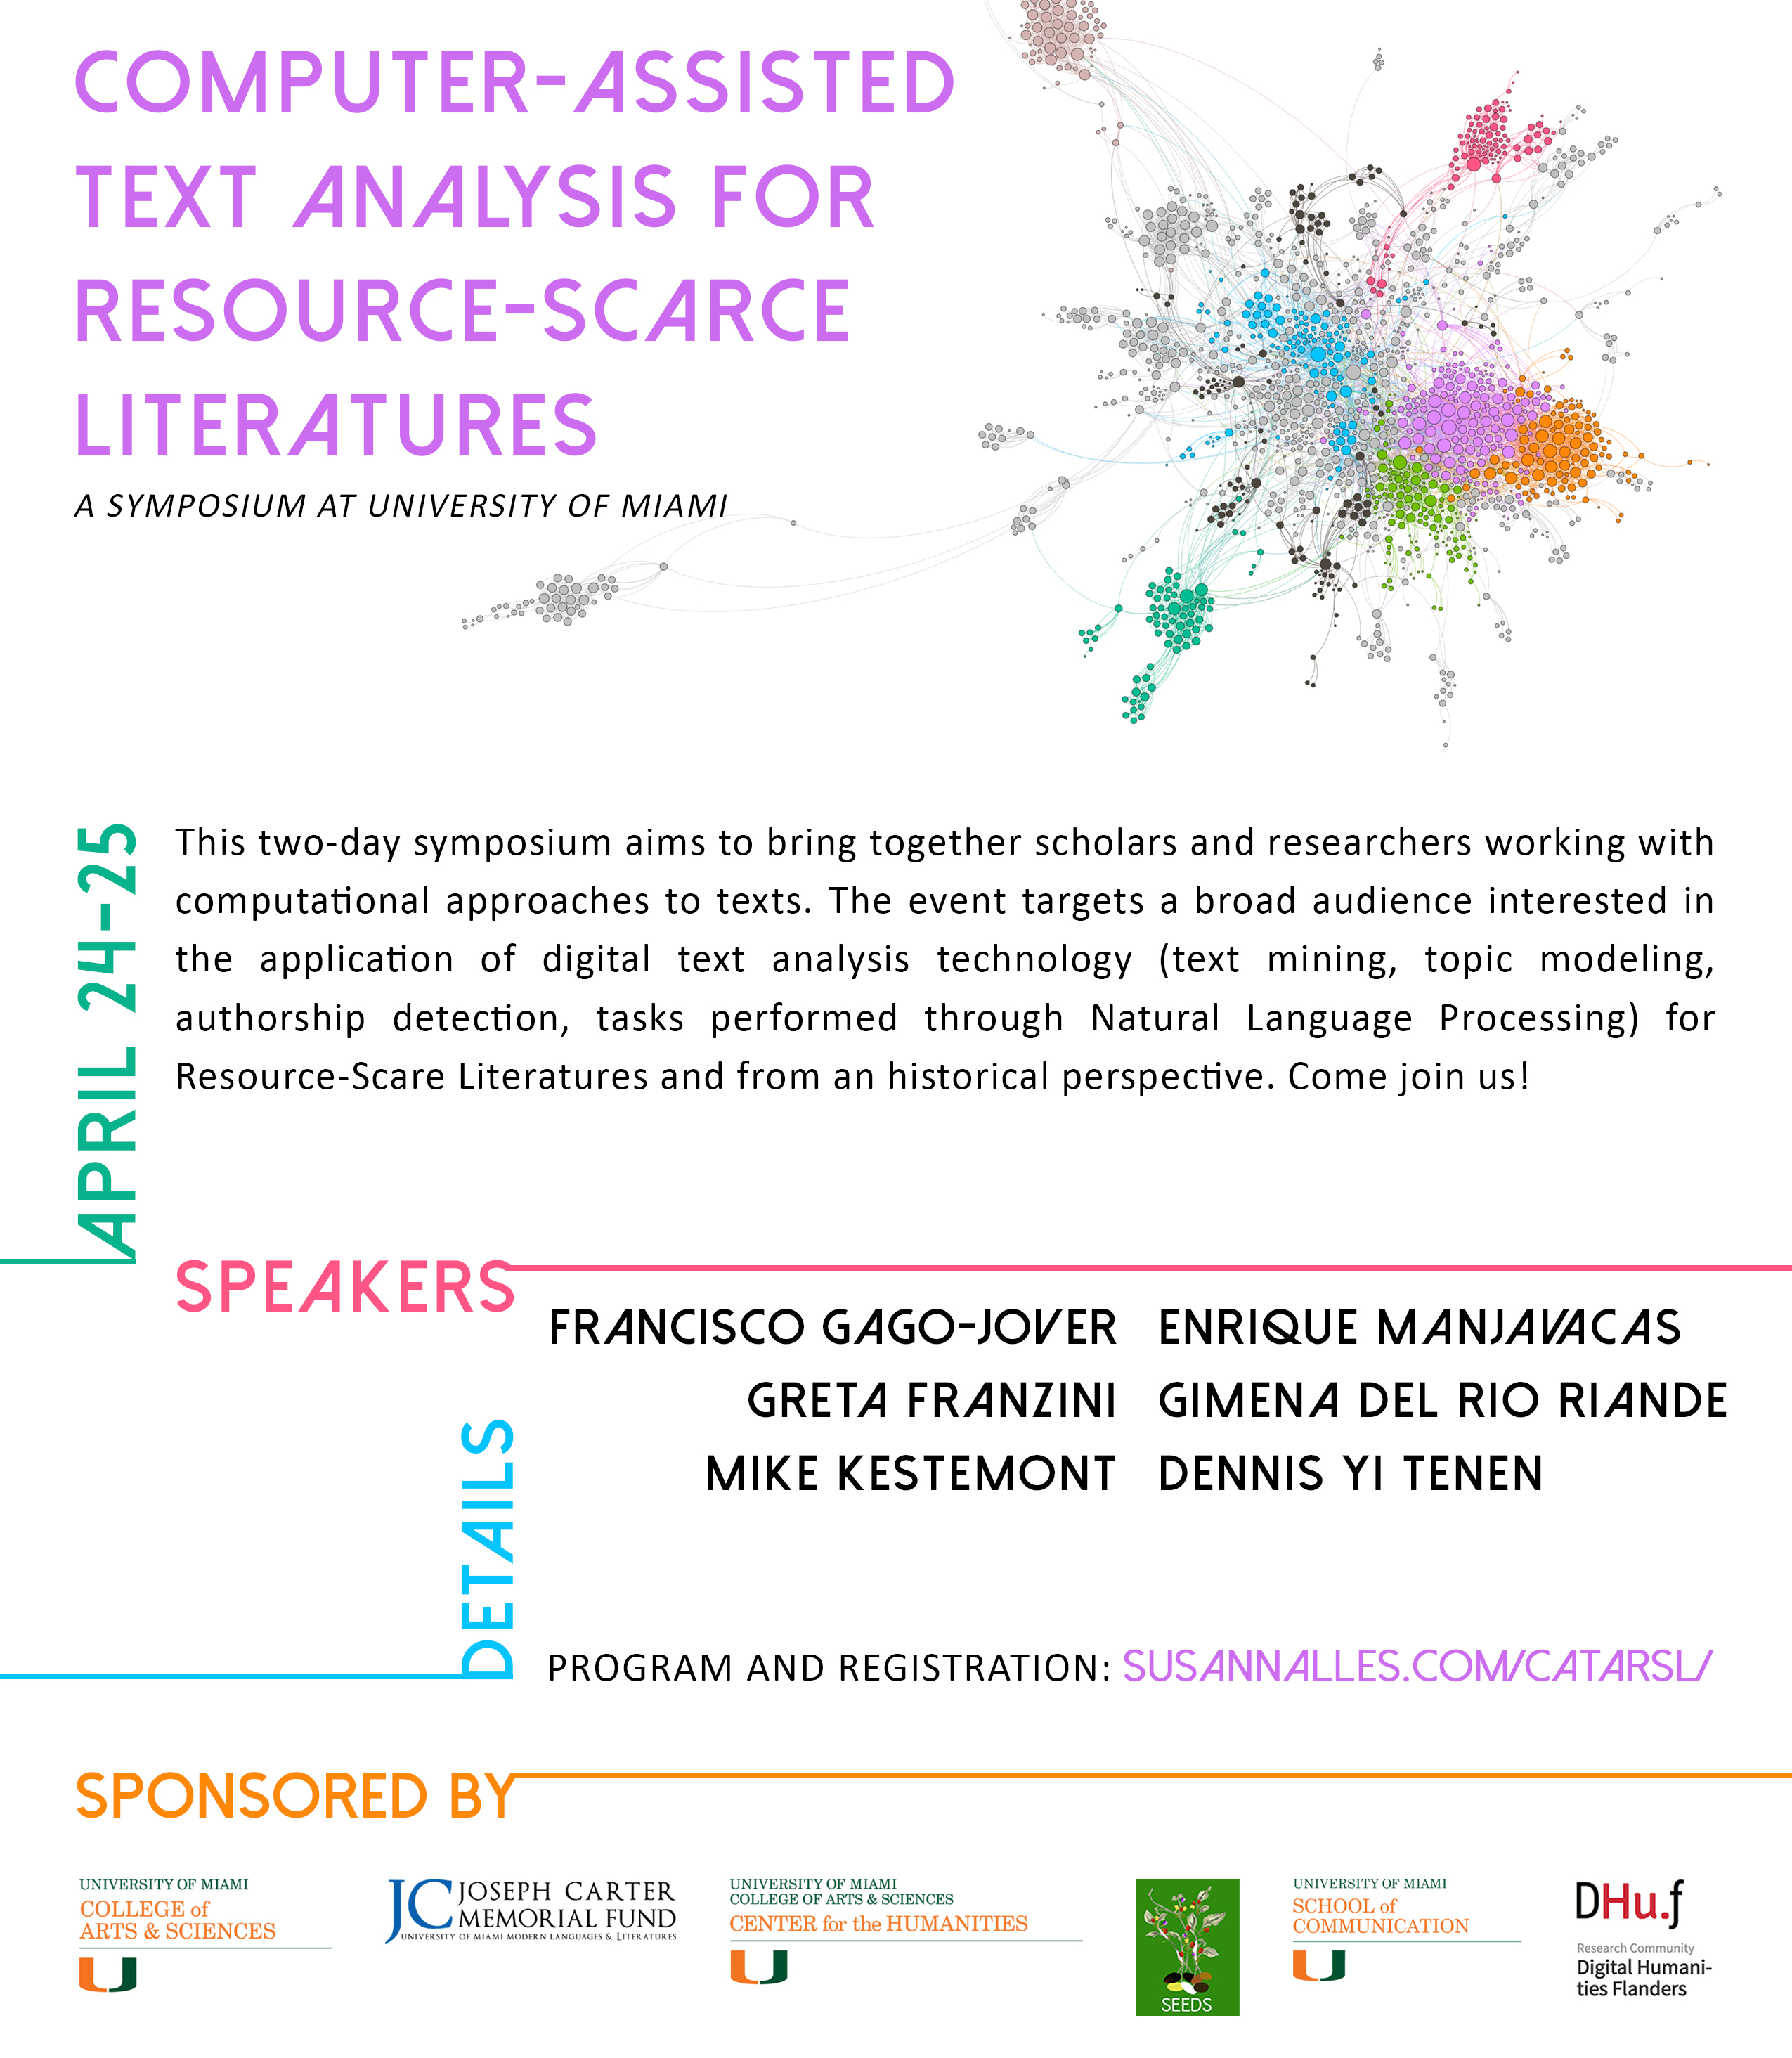 Computer-Assisted Text Analysis for Resource-scarce Literatures Symposium